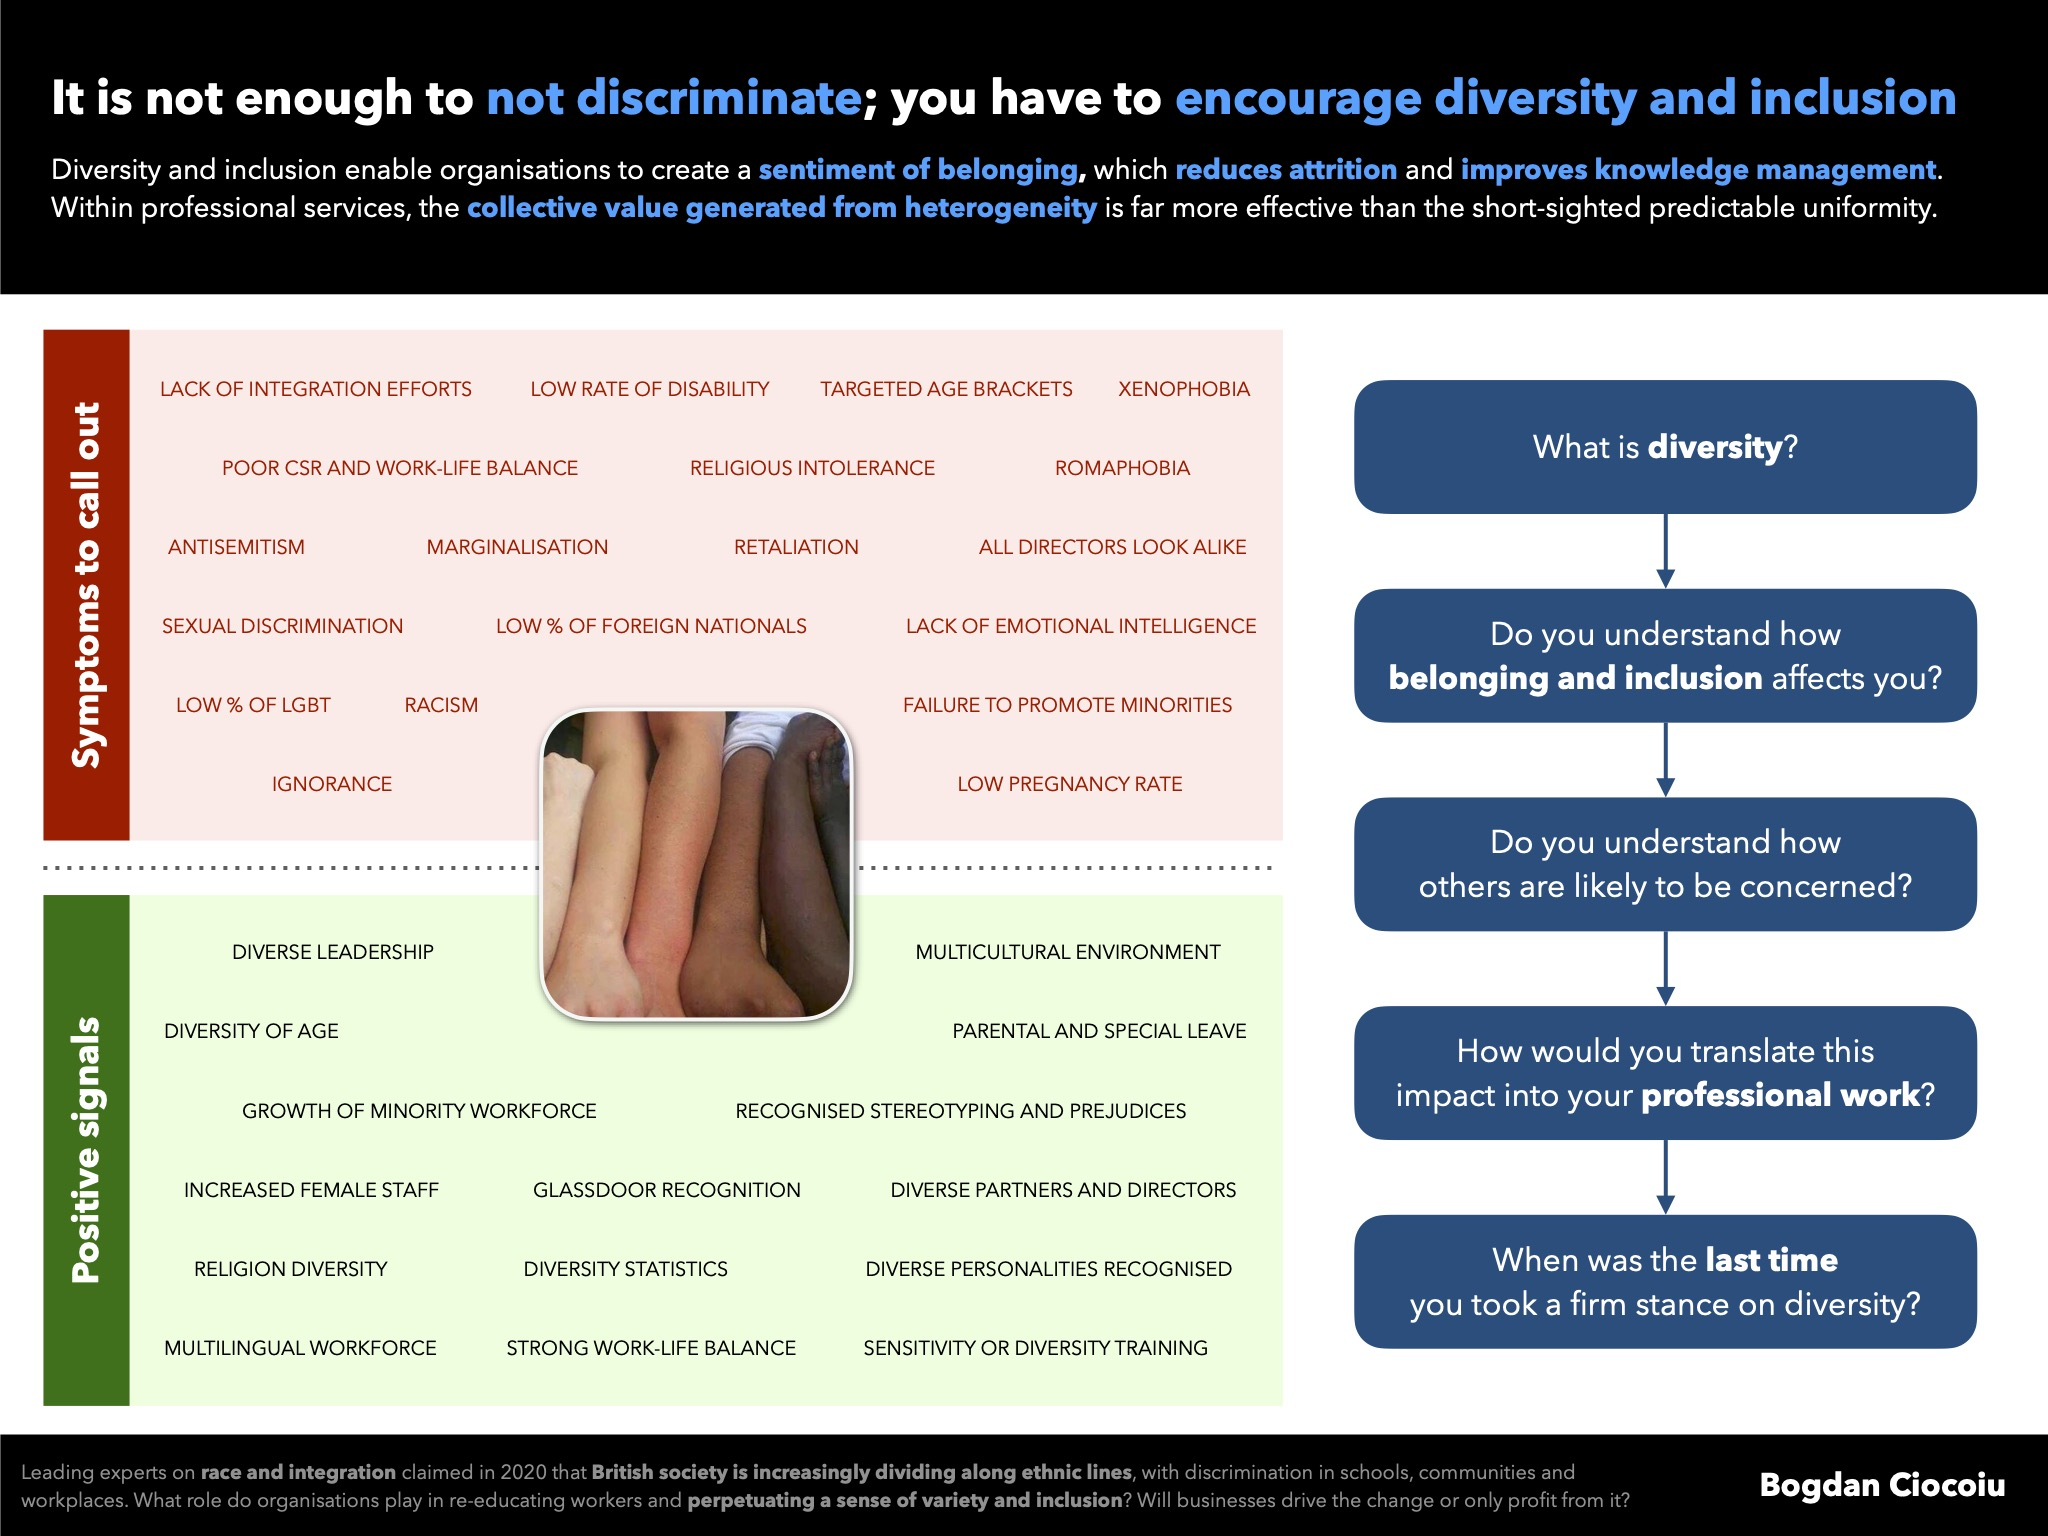 It is not enough to not discriminate; everyone must encourage diversity and inclusion